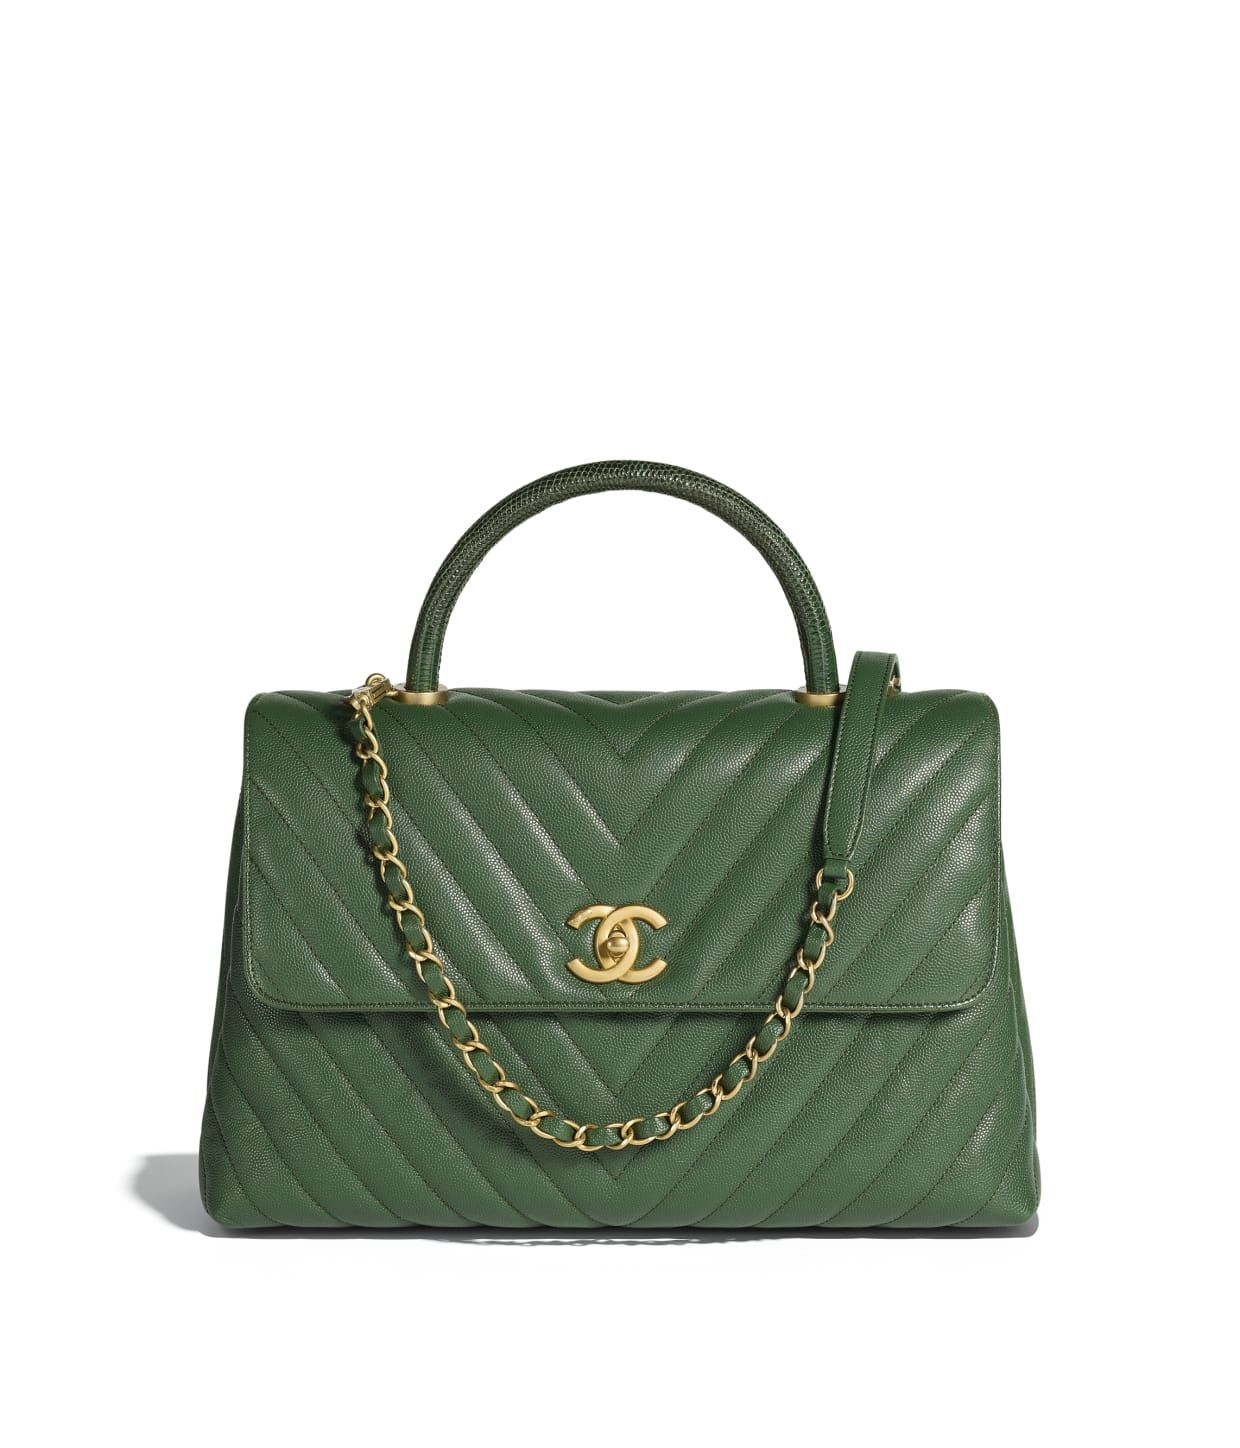 15ea752d65f09a Grained Calfskin, Lizard & Gold-Tone Metal Dark Green Large Flap Bag with  Top Handle | CHANEL